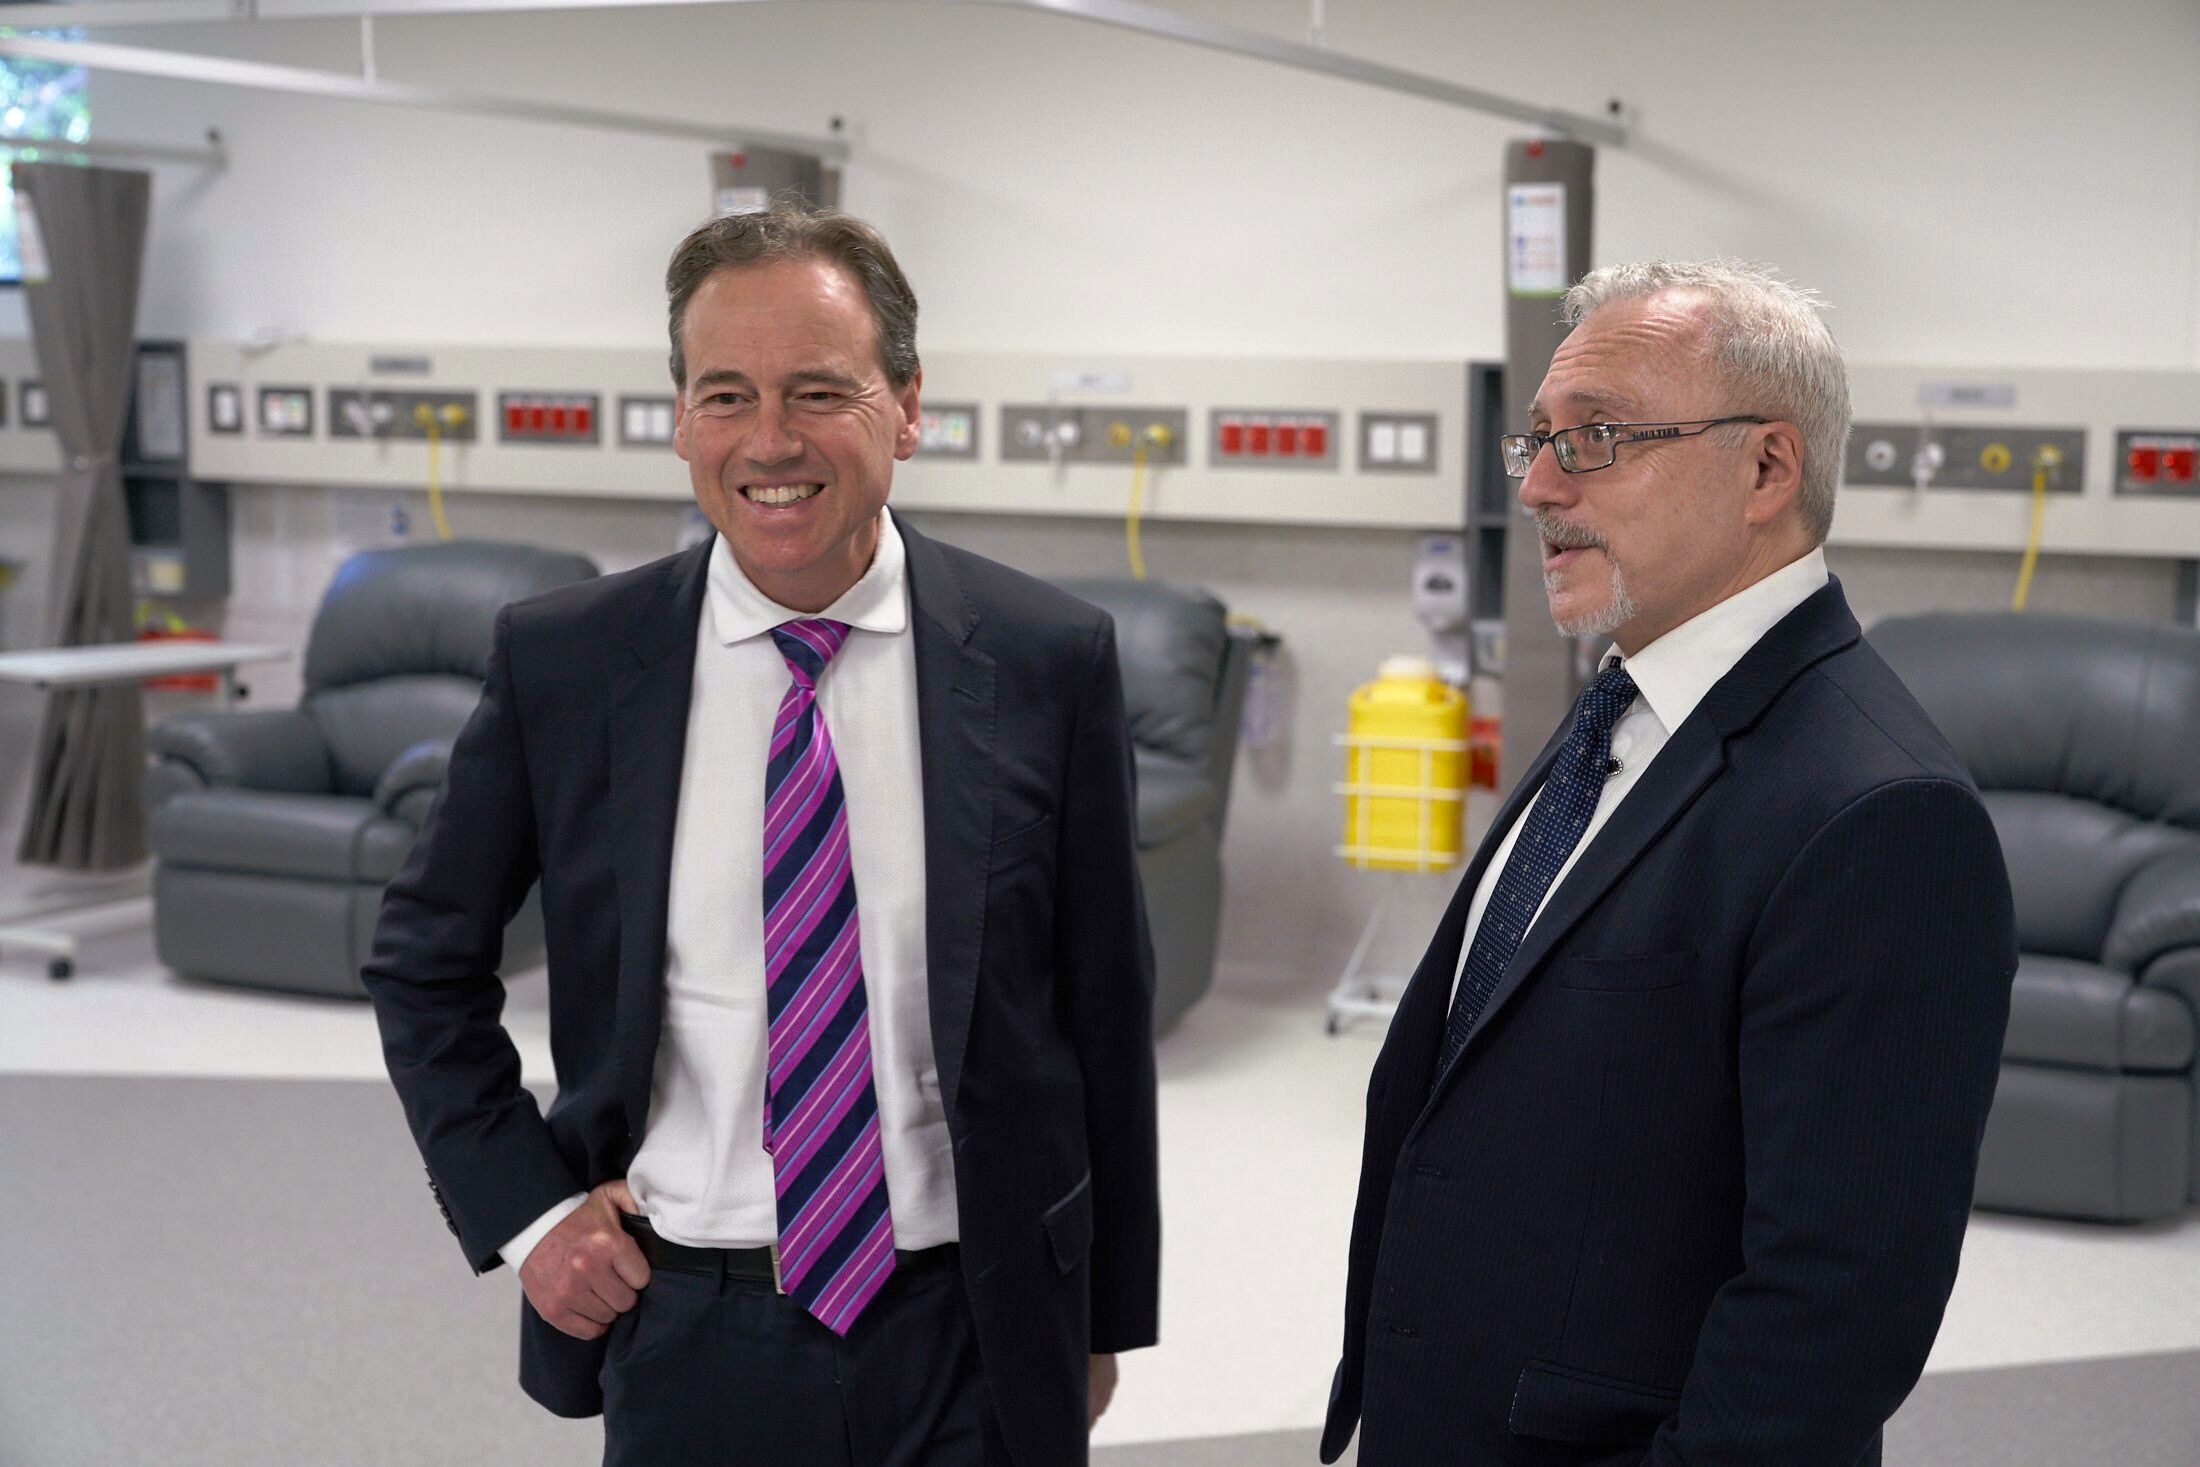 Federal Health Minister, Greg Hunt MP, at the opening of HealthScreen centre